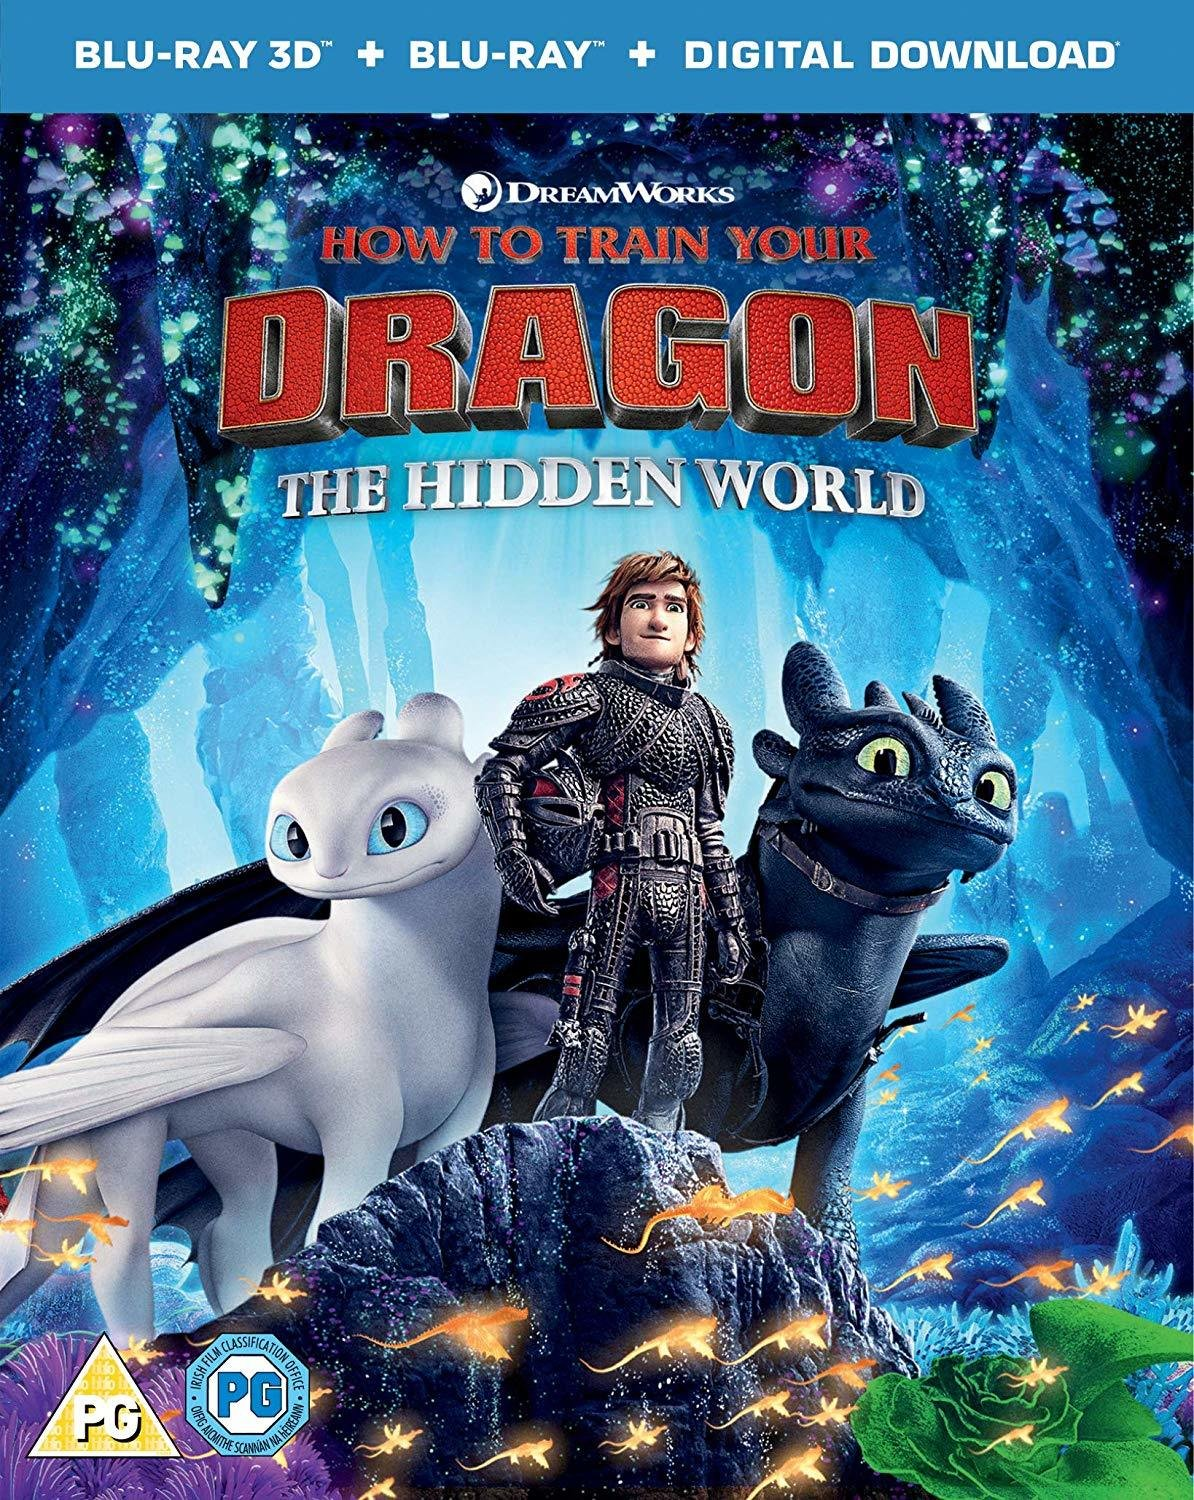 How to Train Your Dragon: The Hidden World (2019) poster image